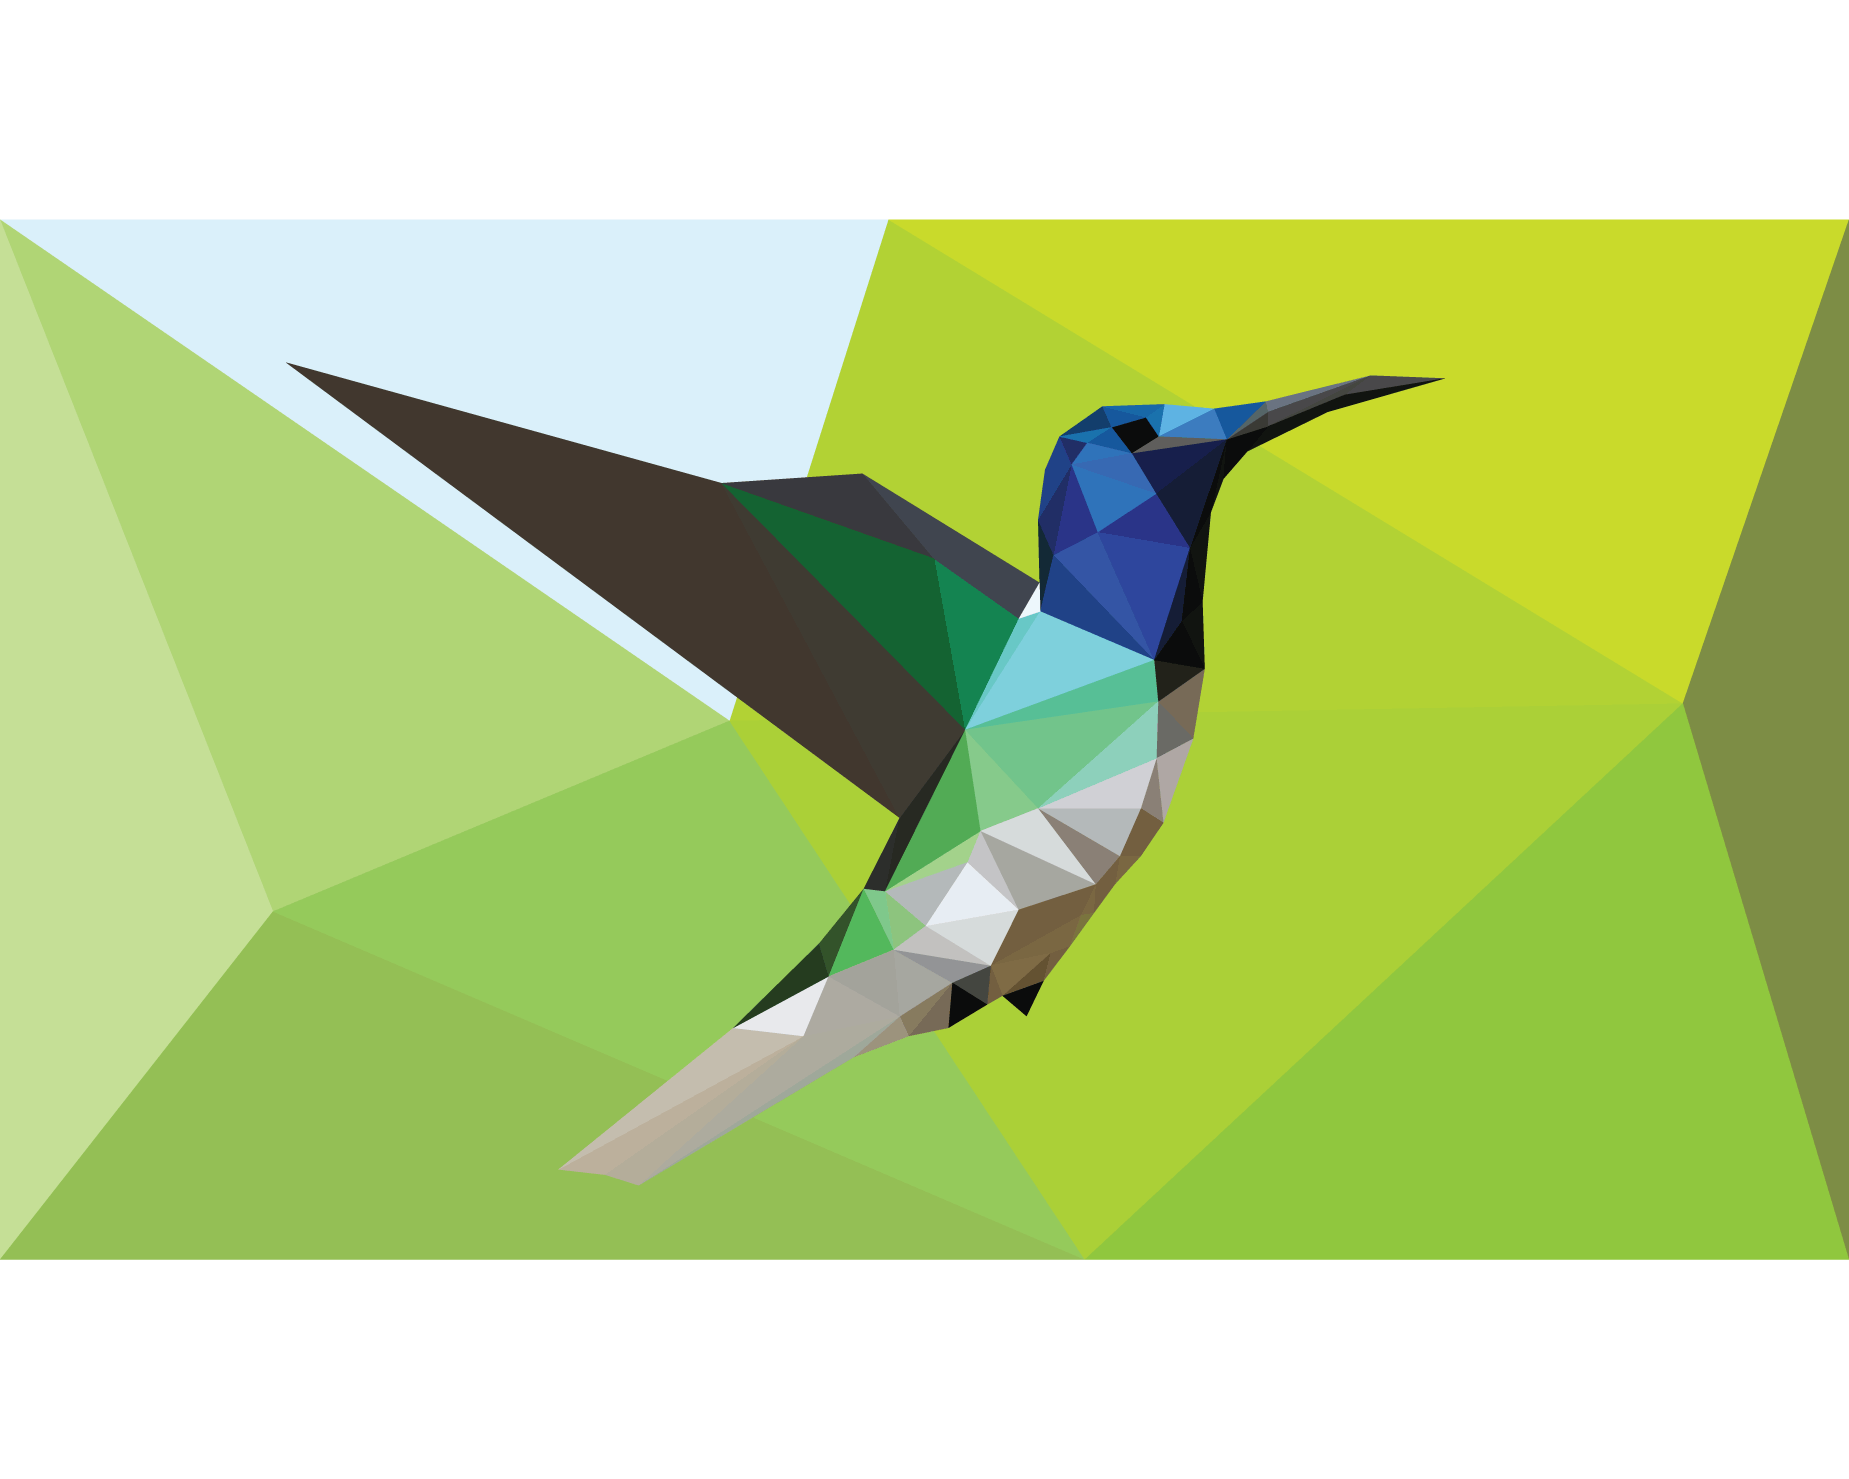 Hummingbirds in low poly style